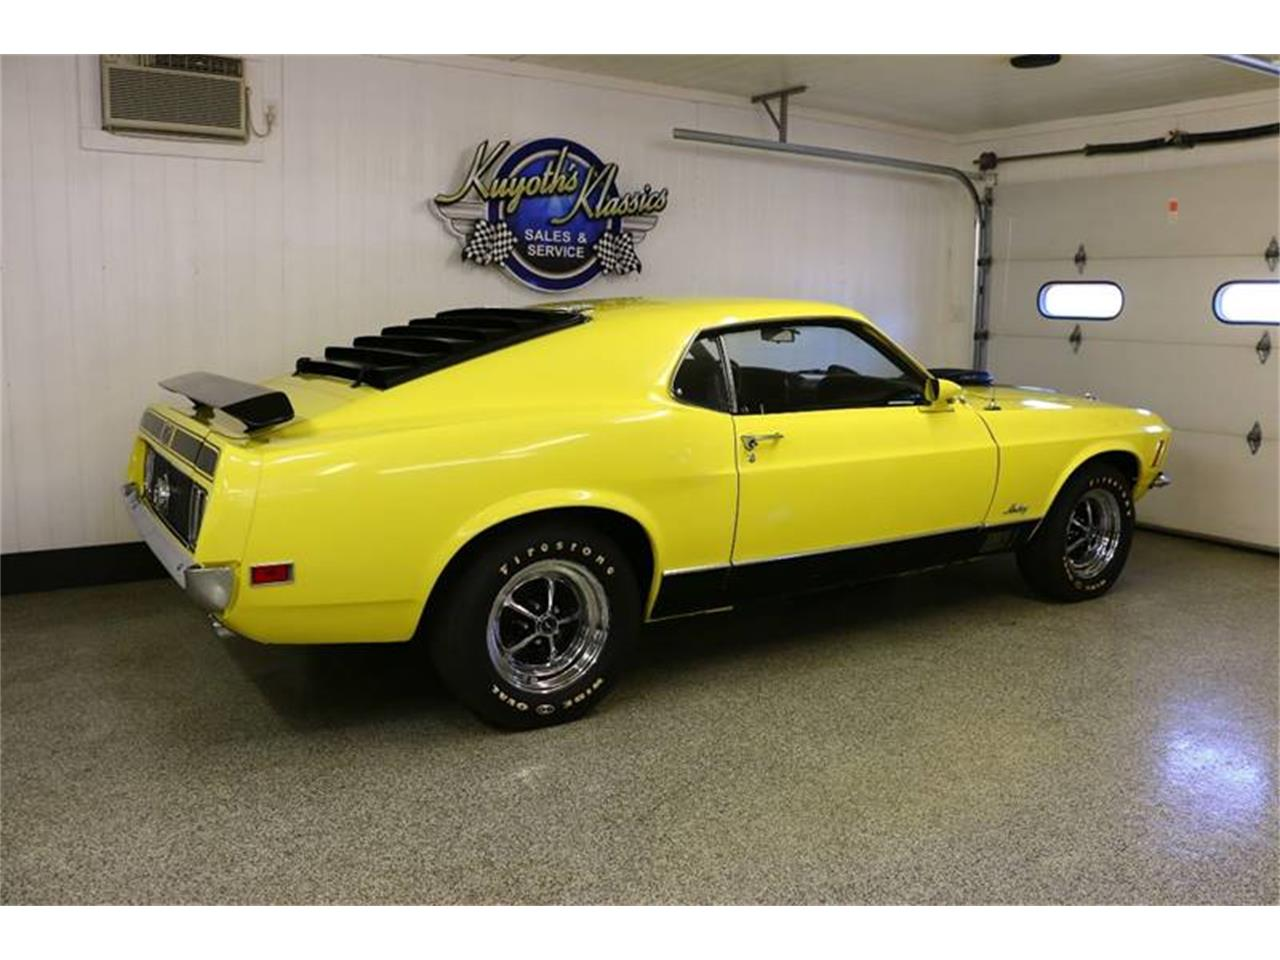 Large Picture of Classic 1970 Mustang located in Wisconsin - $49,995.00 Offered by Kuyoth's Klassics - NRLD